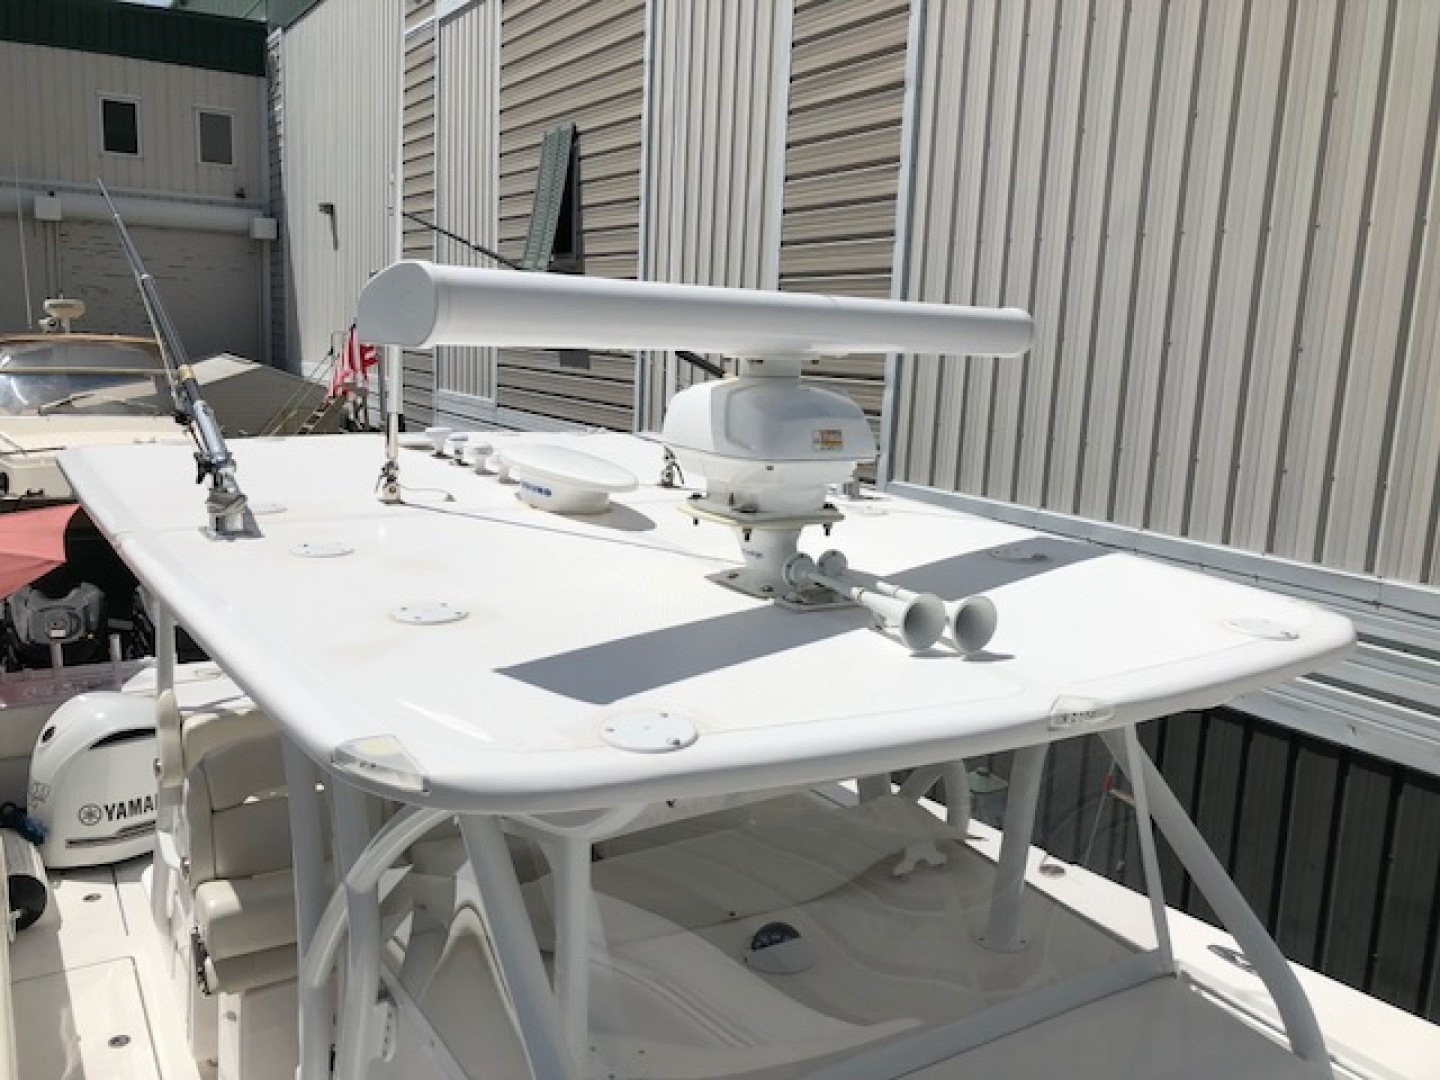 SeaHunter-45 Center Console 2016-No Name Bal Harbour-Florida-United States-2016 Sea Hunter 45 Center Console  Hardtop and Radar-1065506   Thumbnail